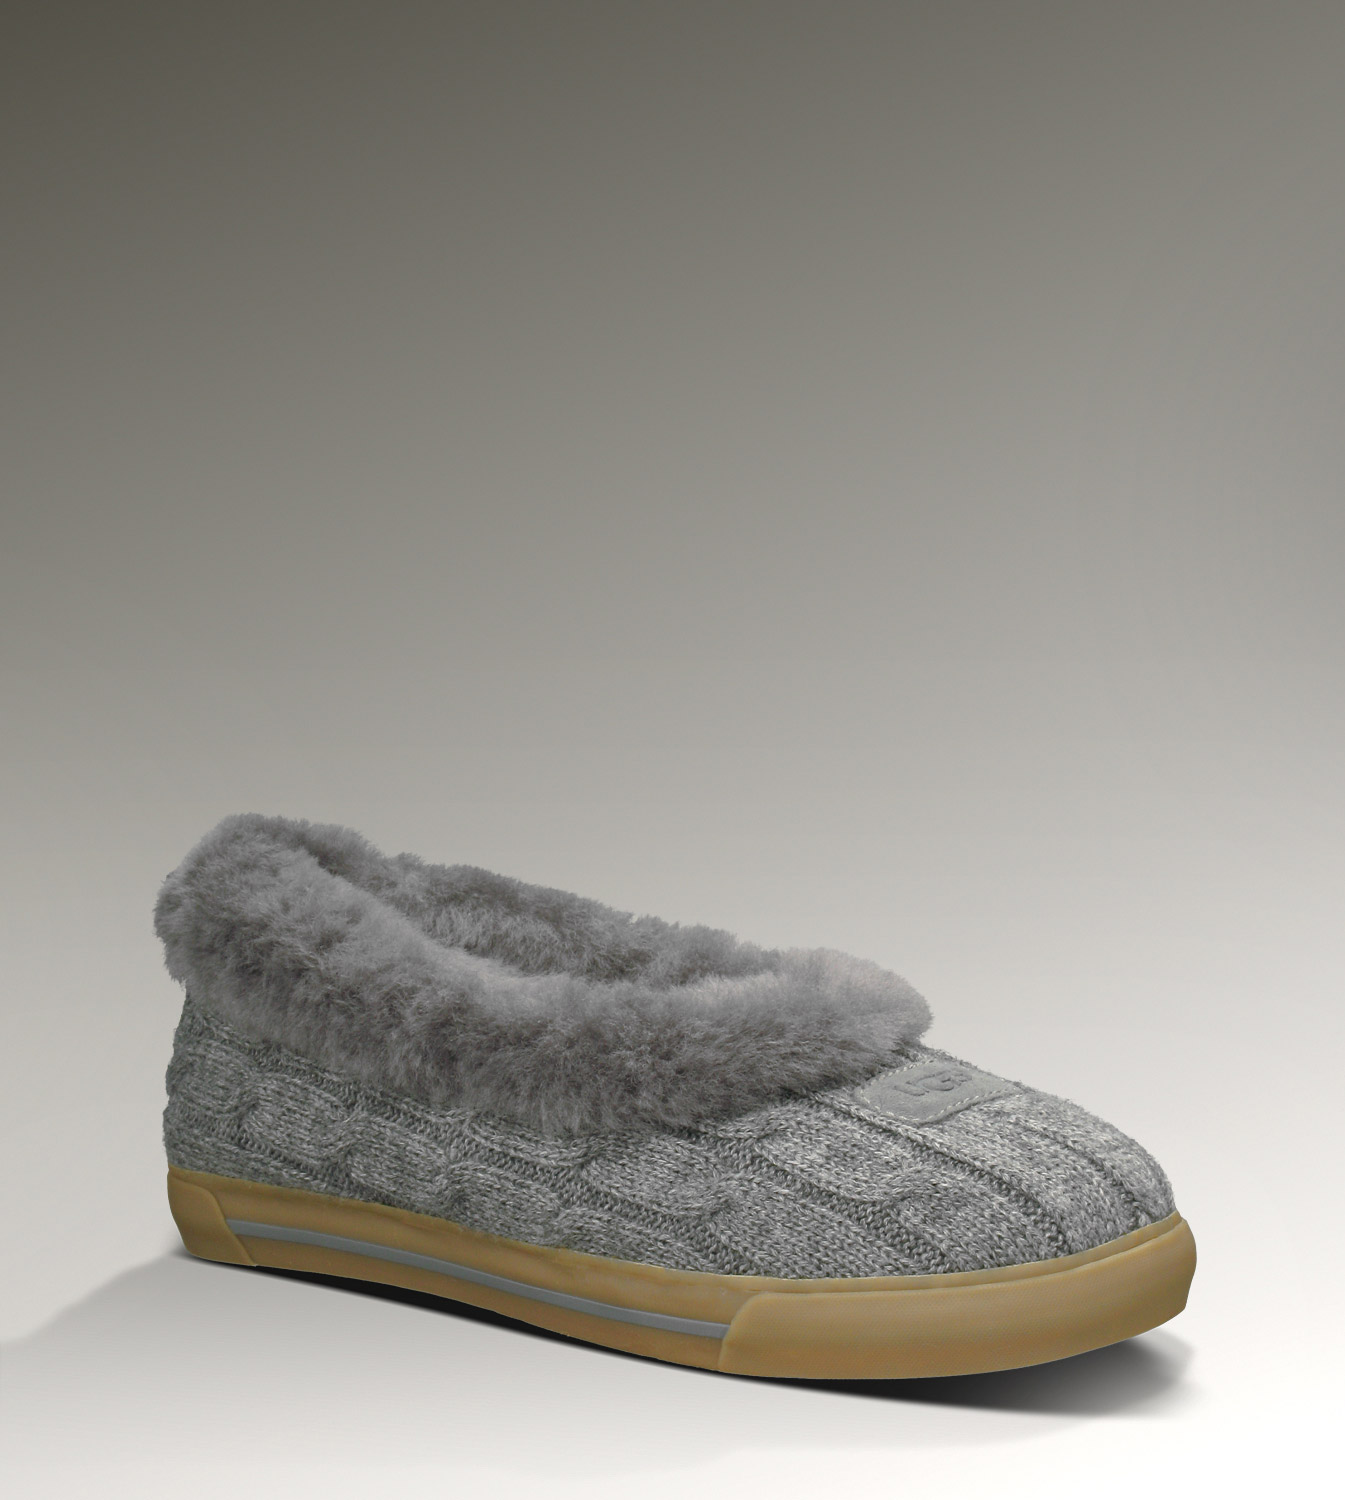 UGG Rylan Knit 3314 Grey Slippers